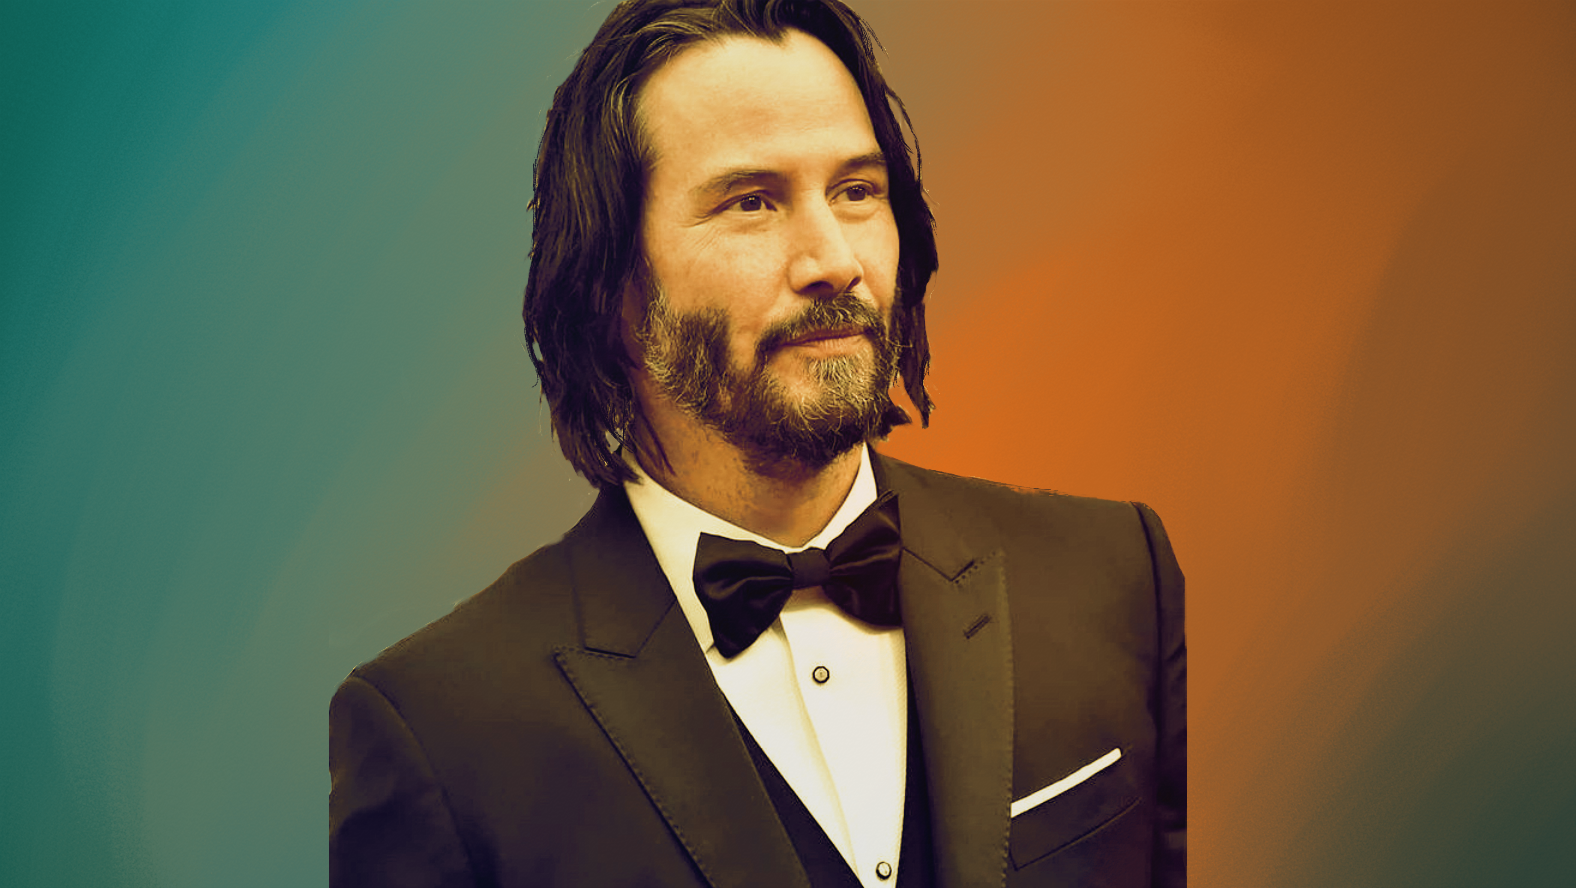 5 Quotes by Keanu Reeves That May Help You Live an Authentic and Wholesome Life